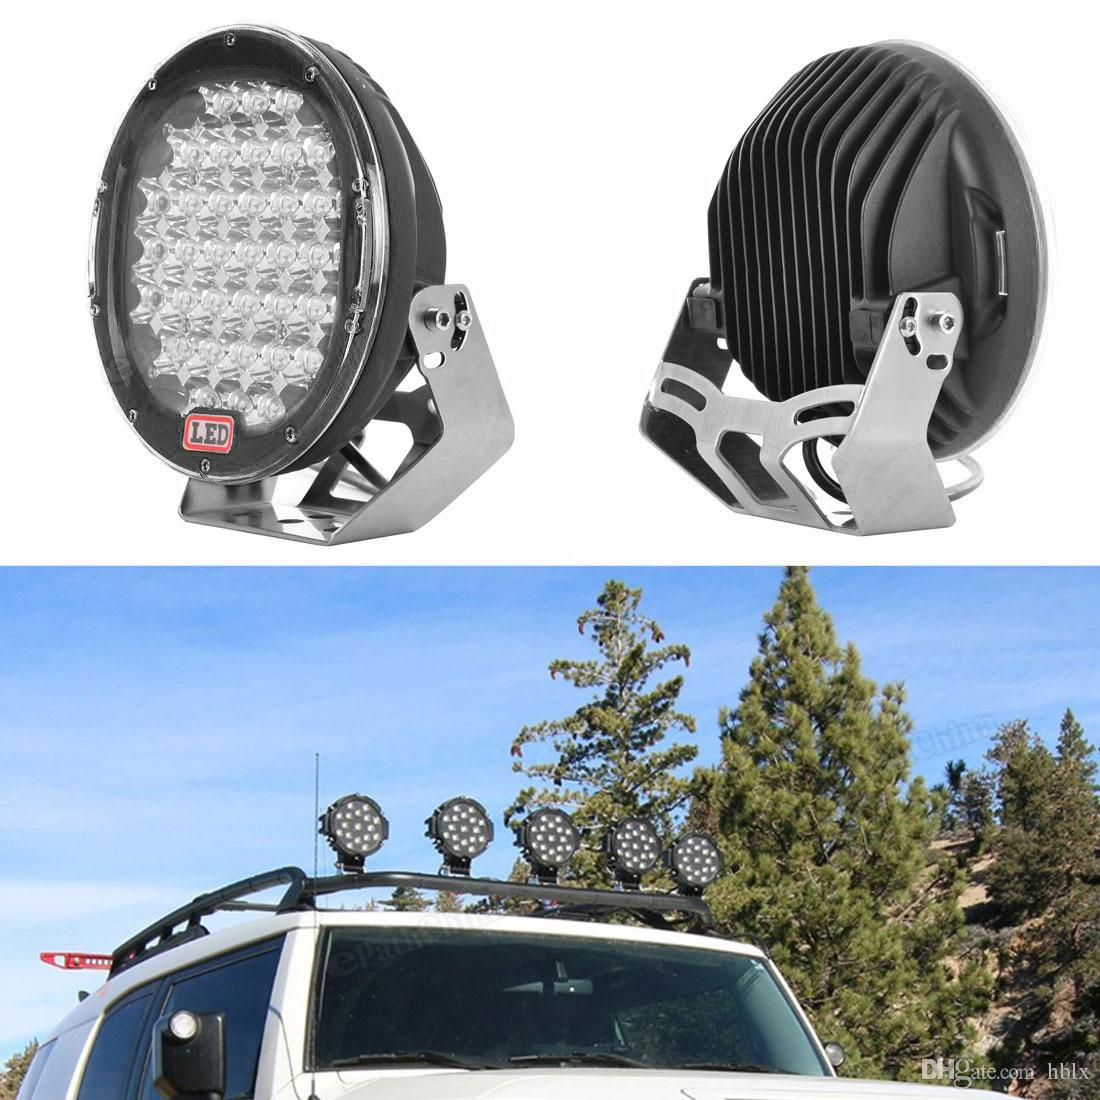 9 Inch 185W 6000K Work Driving Lights Spot / Flood light HID Vehicle Driving Lights for Offroad SUV ATV Truck Boat CLT_43D